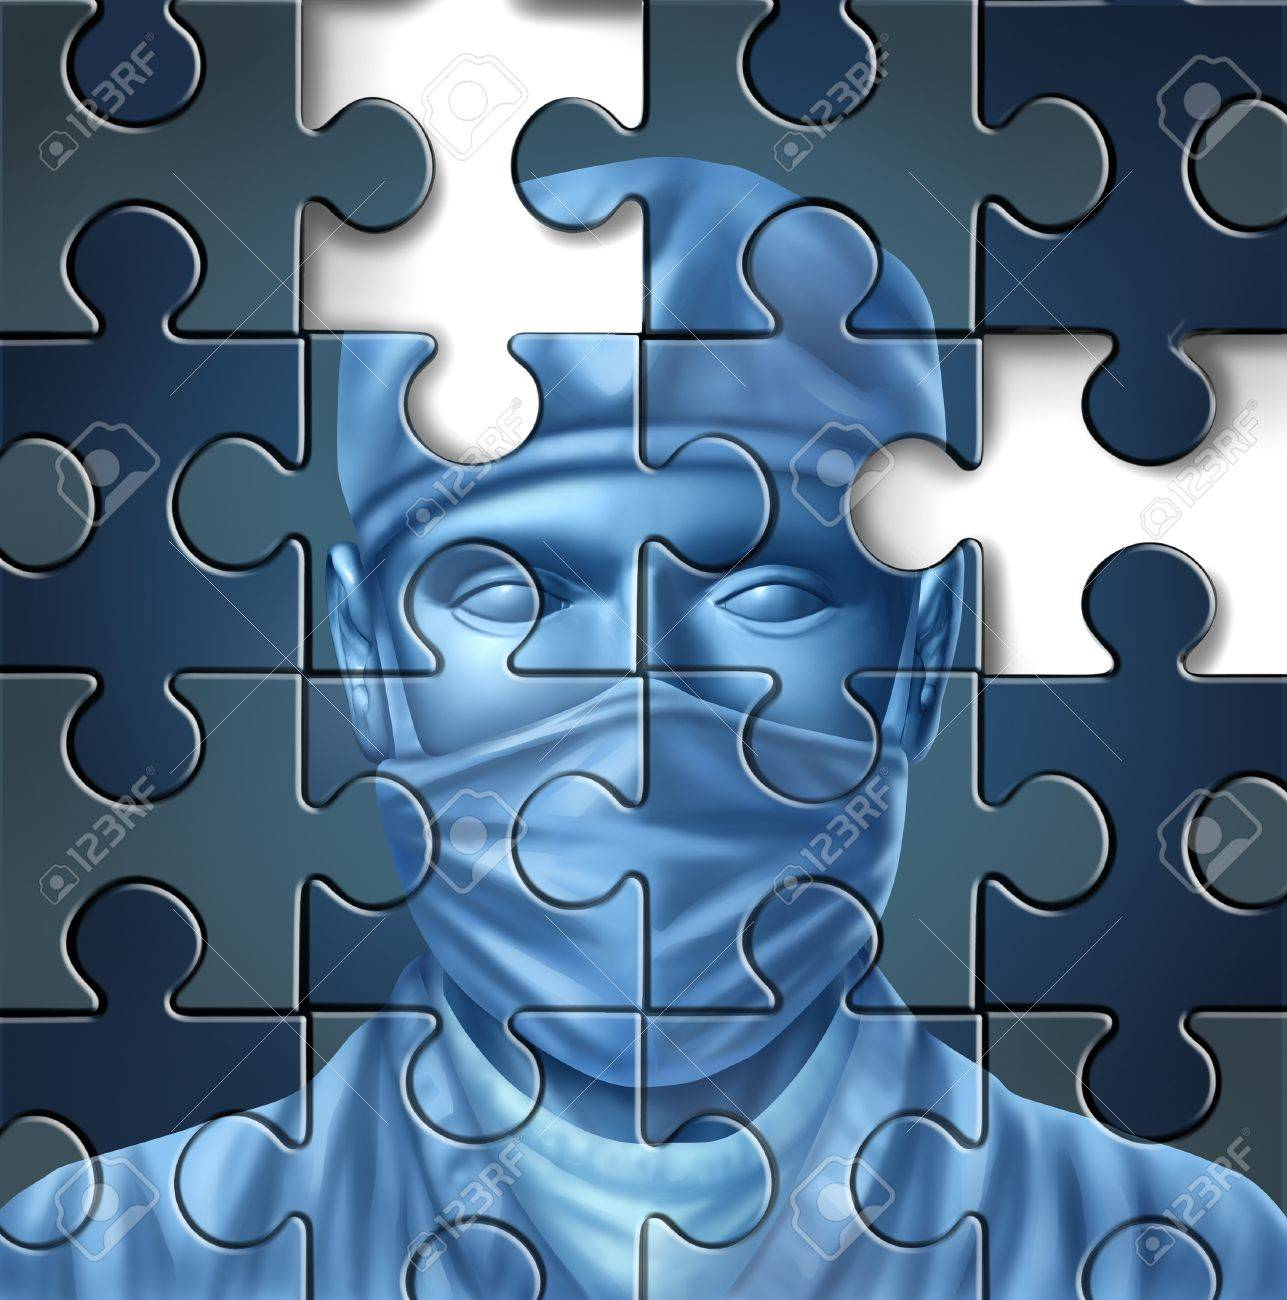 Medical care problems concept with a doctor and a surgeon mask symbol in a puzzle jigsaw texture with pieces missing as change to the status quo of the broken hospital service insurance that needs to be fixed Stock Photo - 14571373